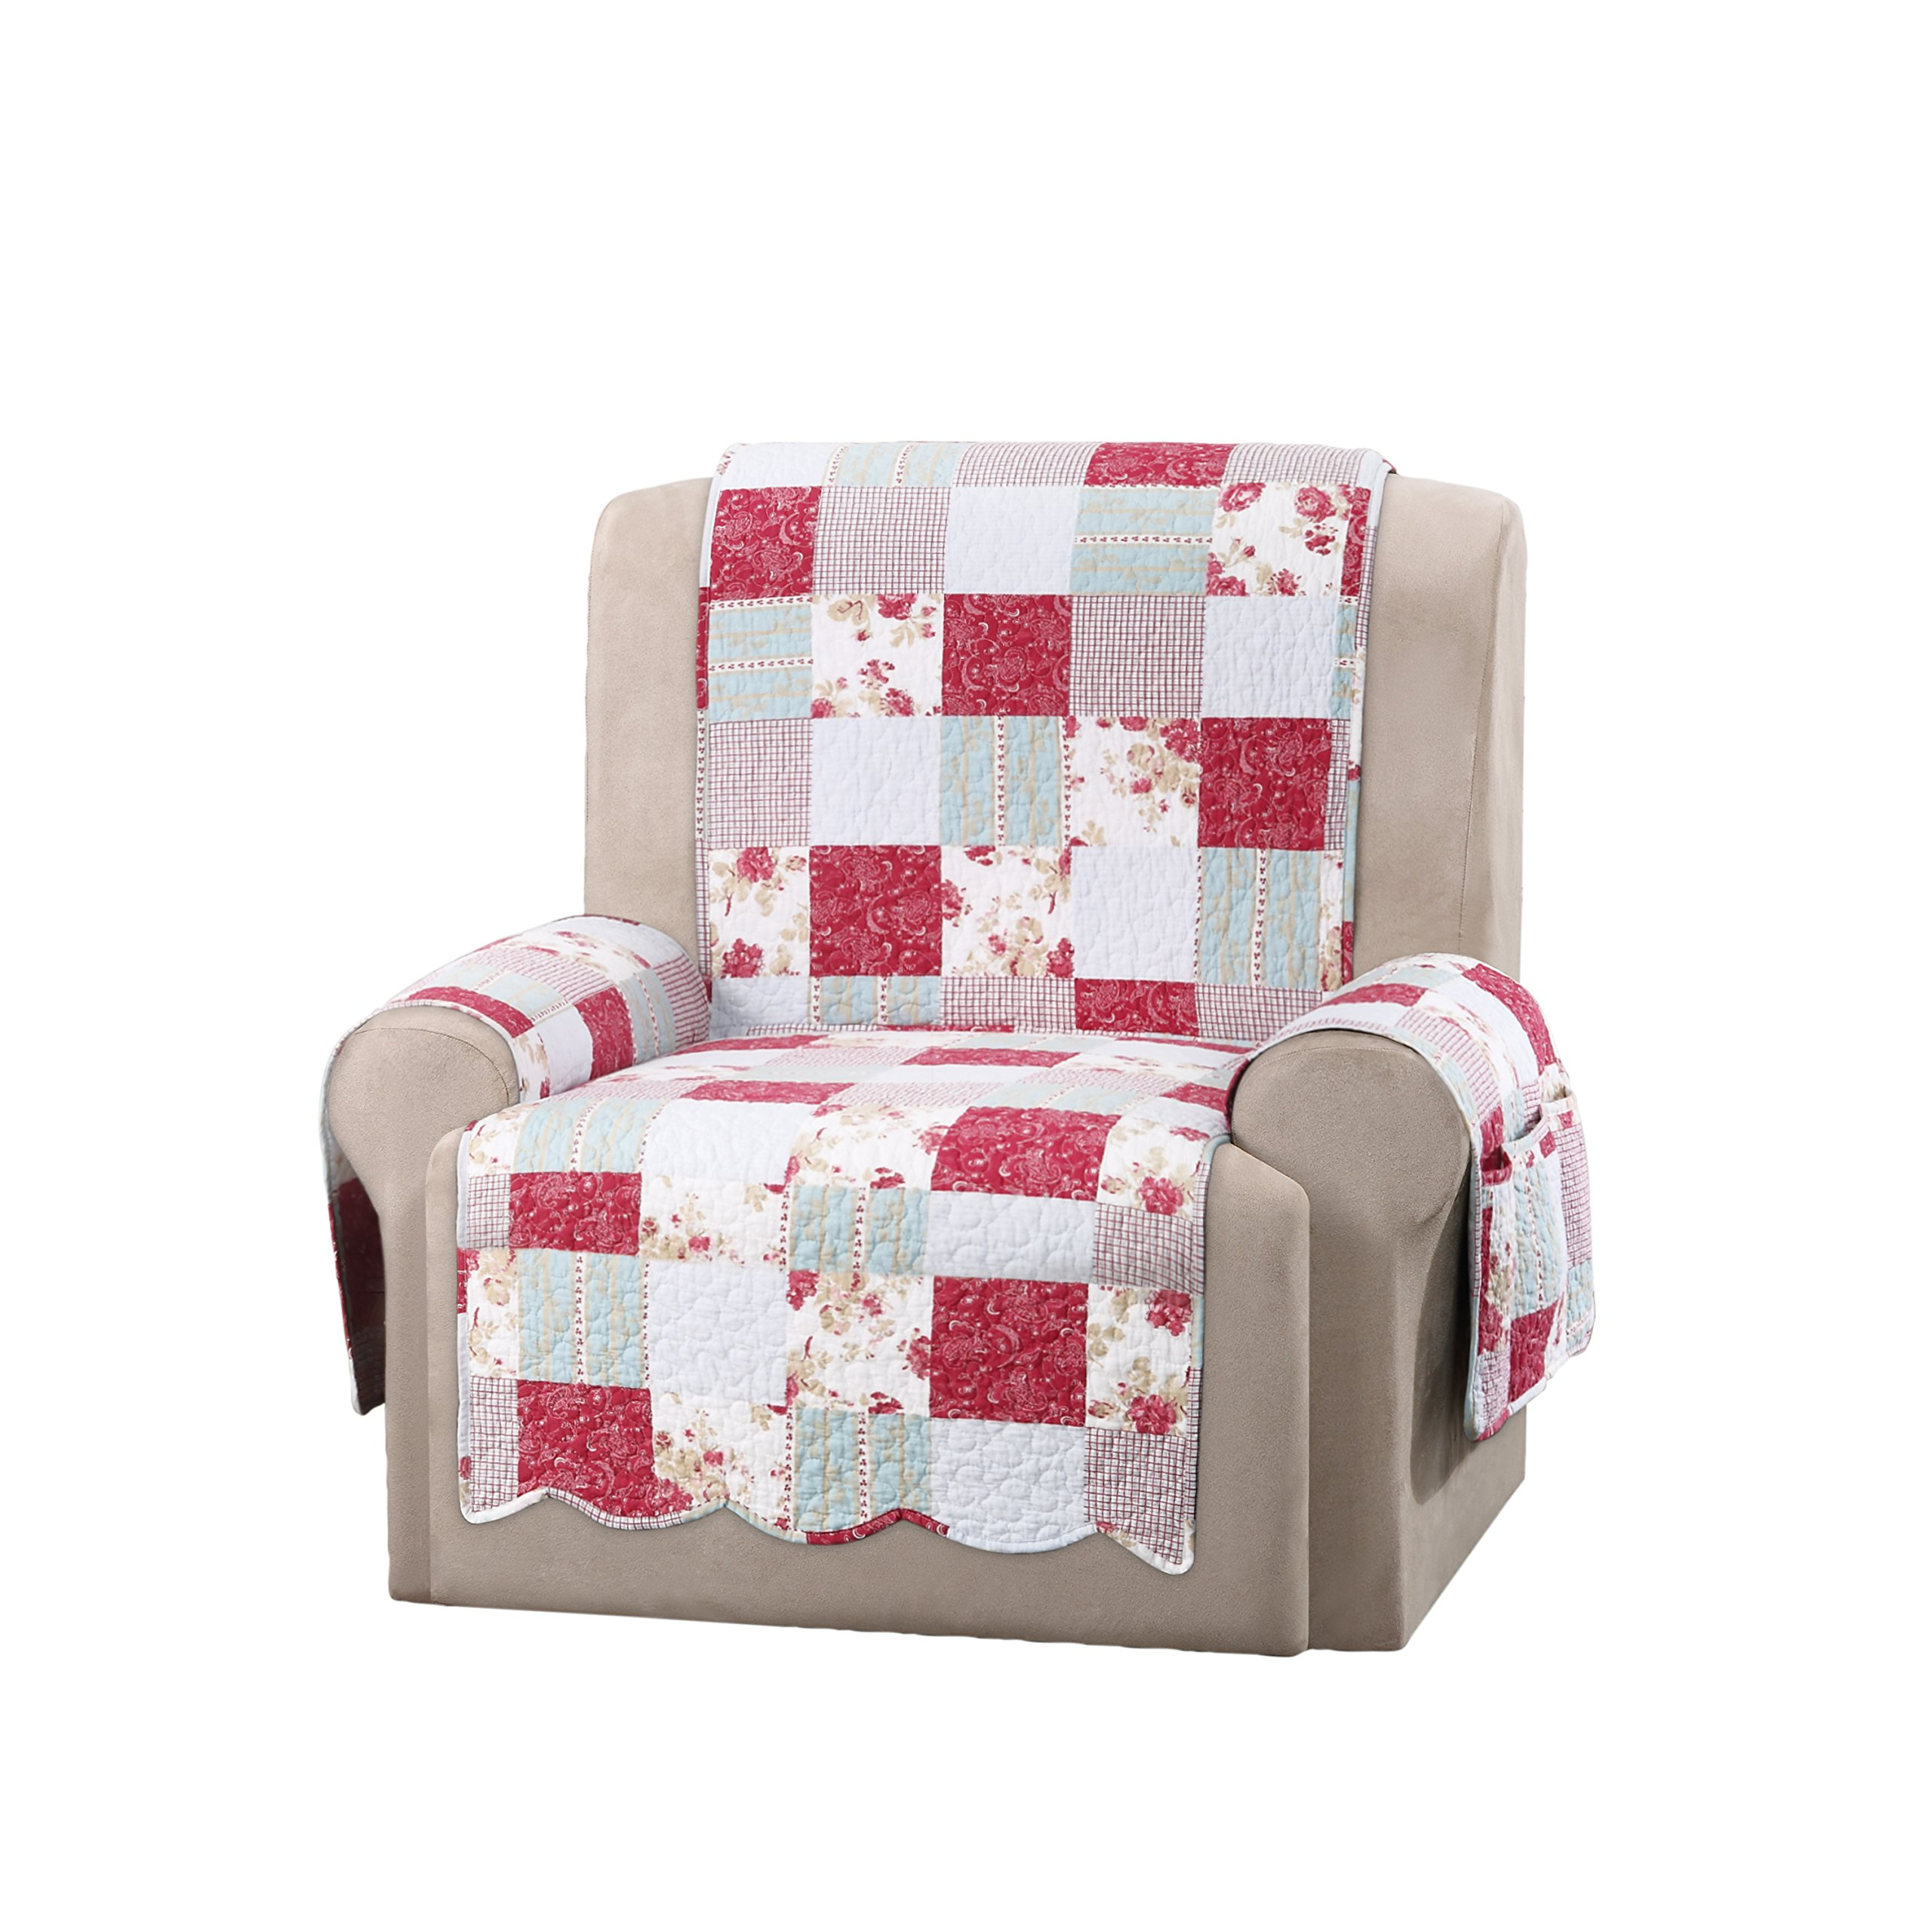 Sure Fit SF46474 Heirloom Quilted Wing Chair/Recliner Pet/Slipcover with Pocket Arms, Cottage Patchwork